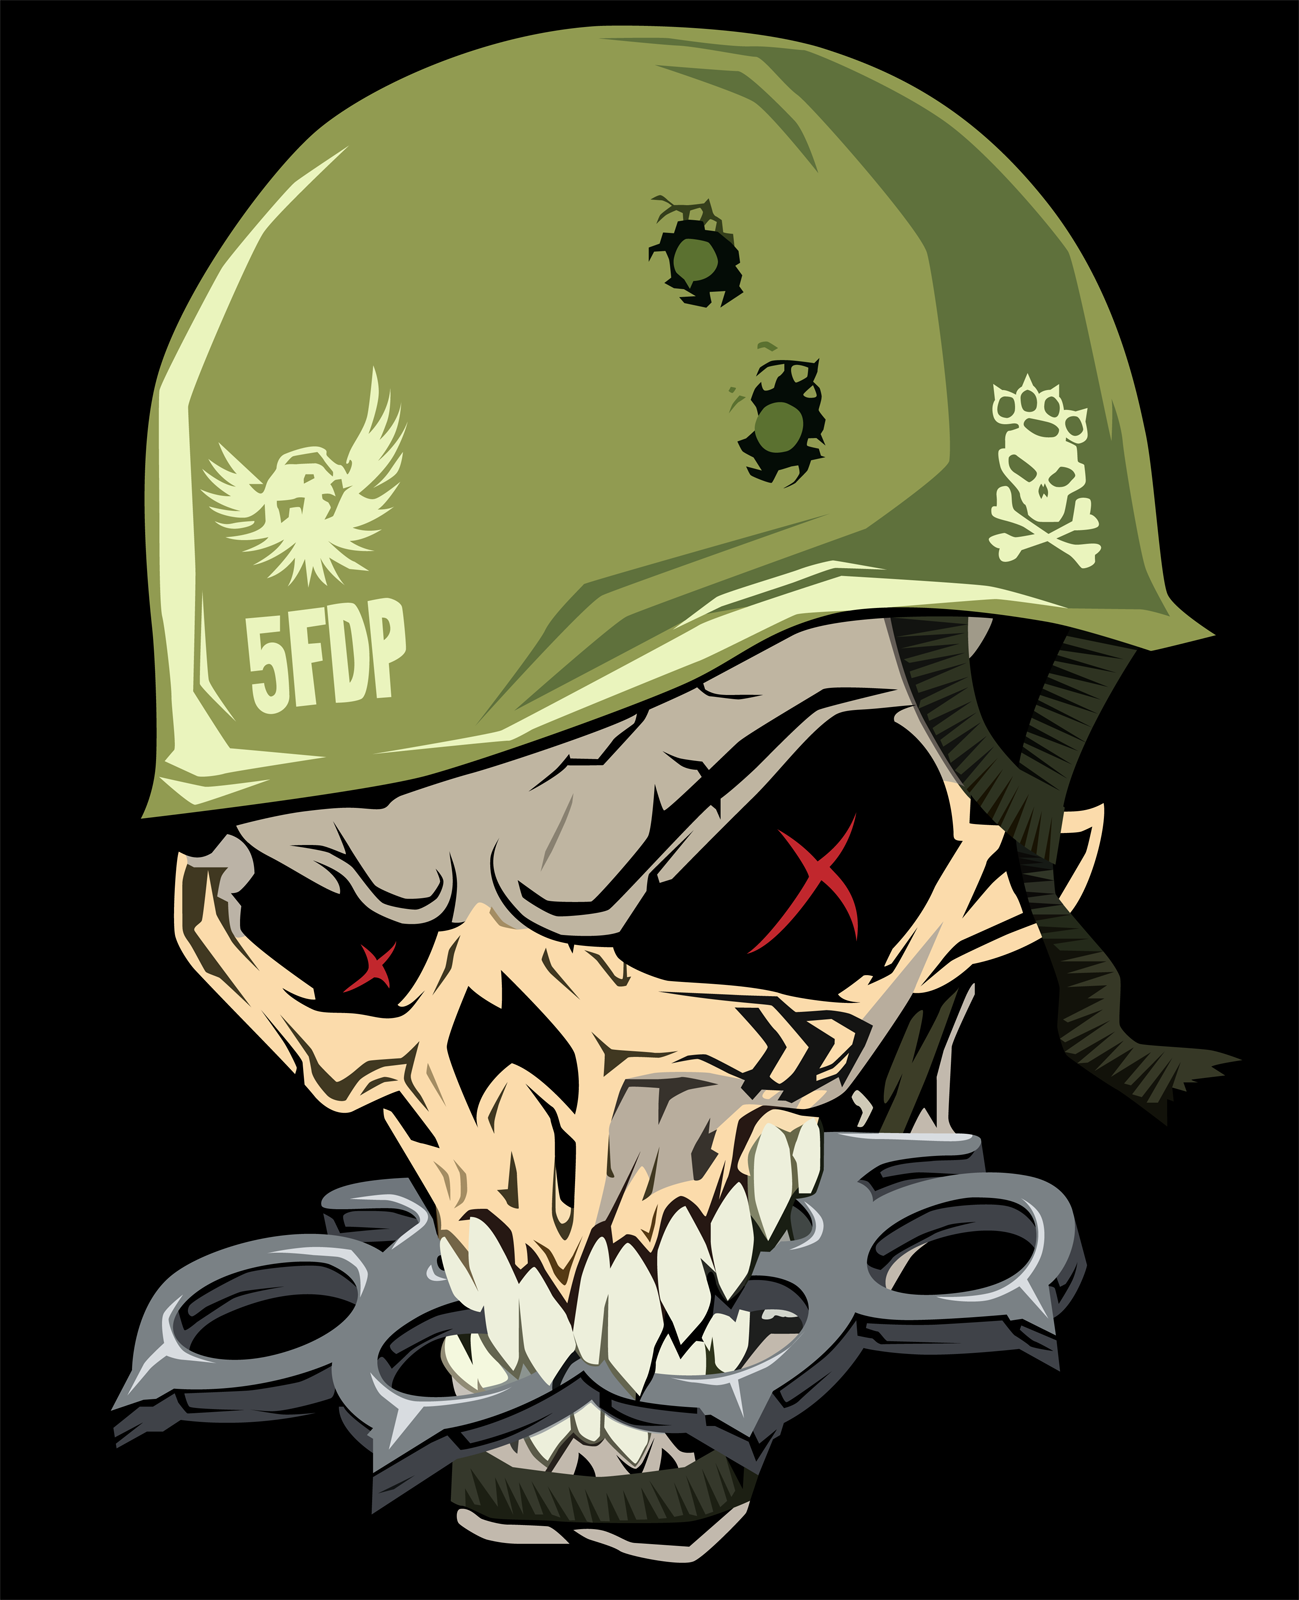 Military 5FDP in 2019.